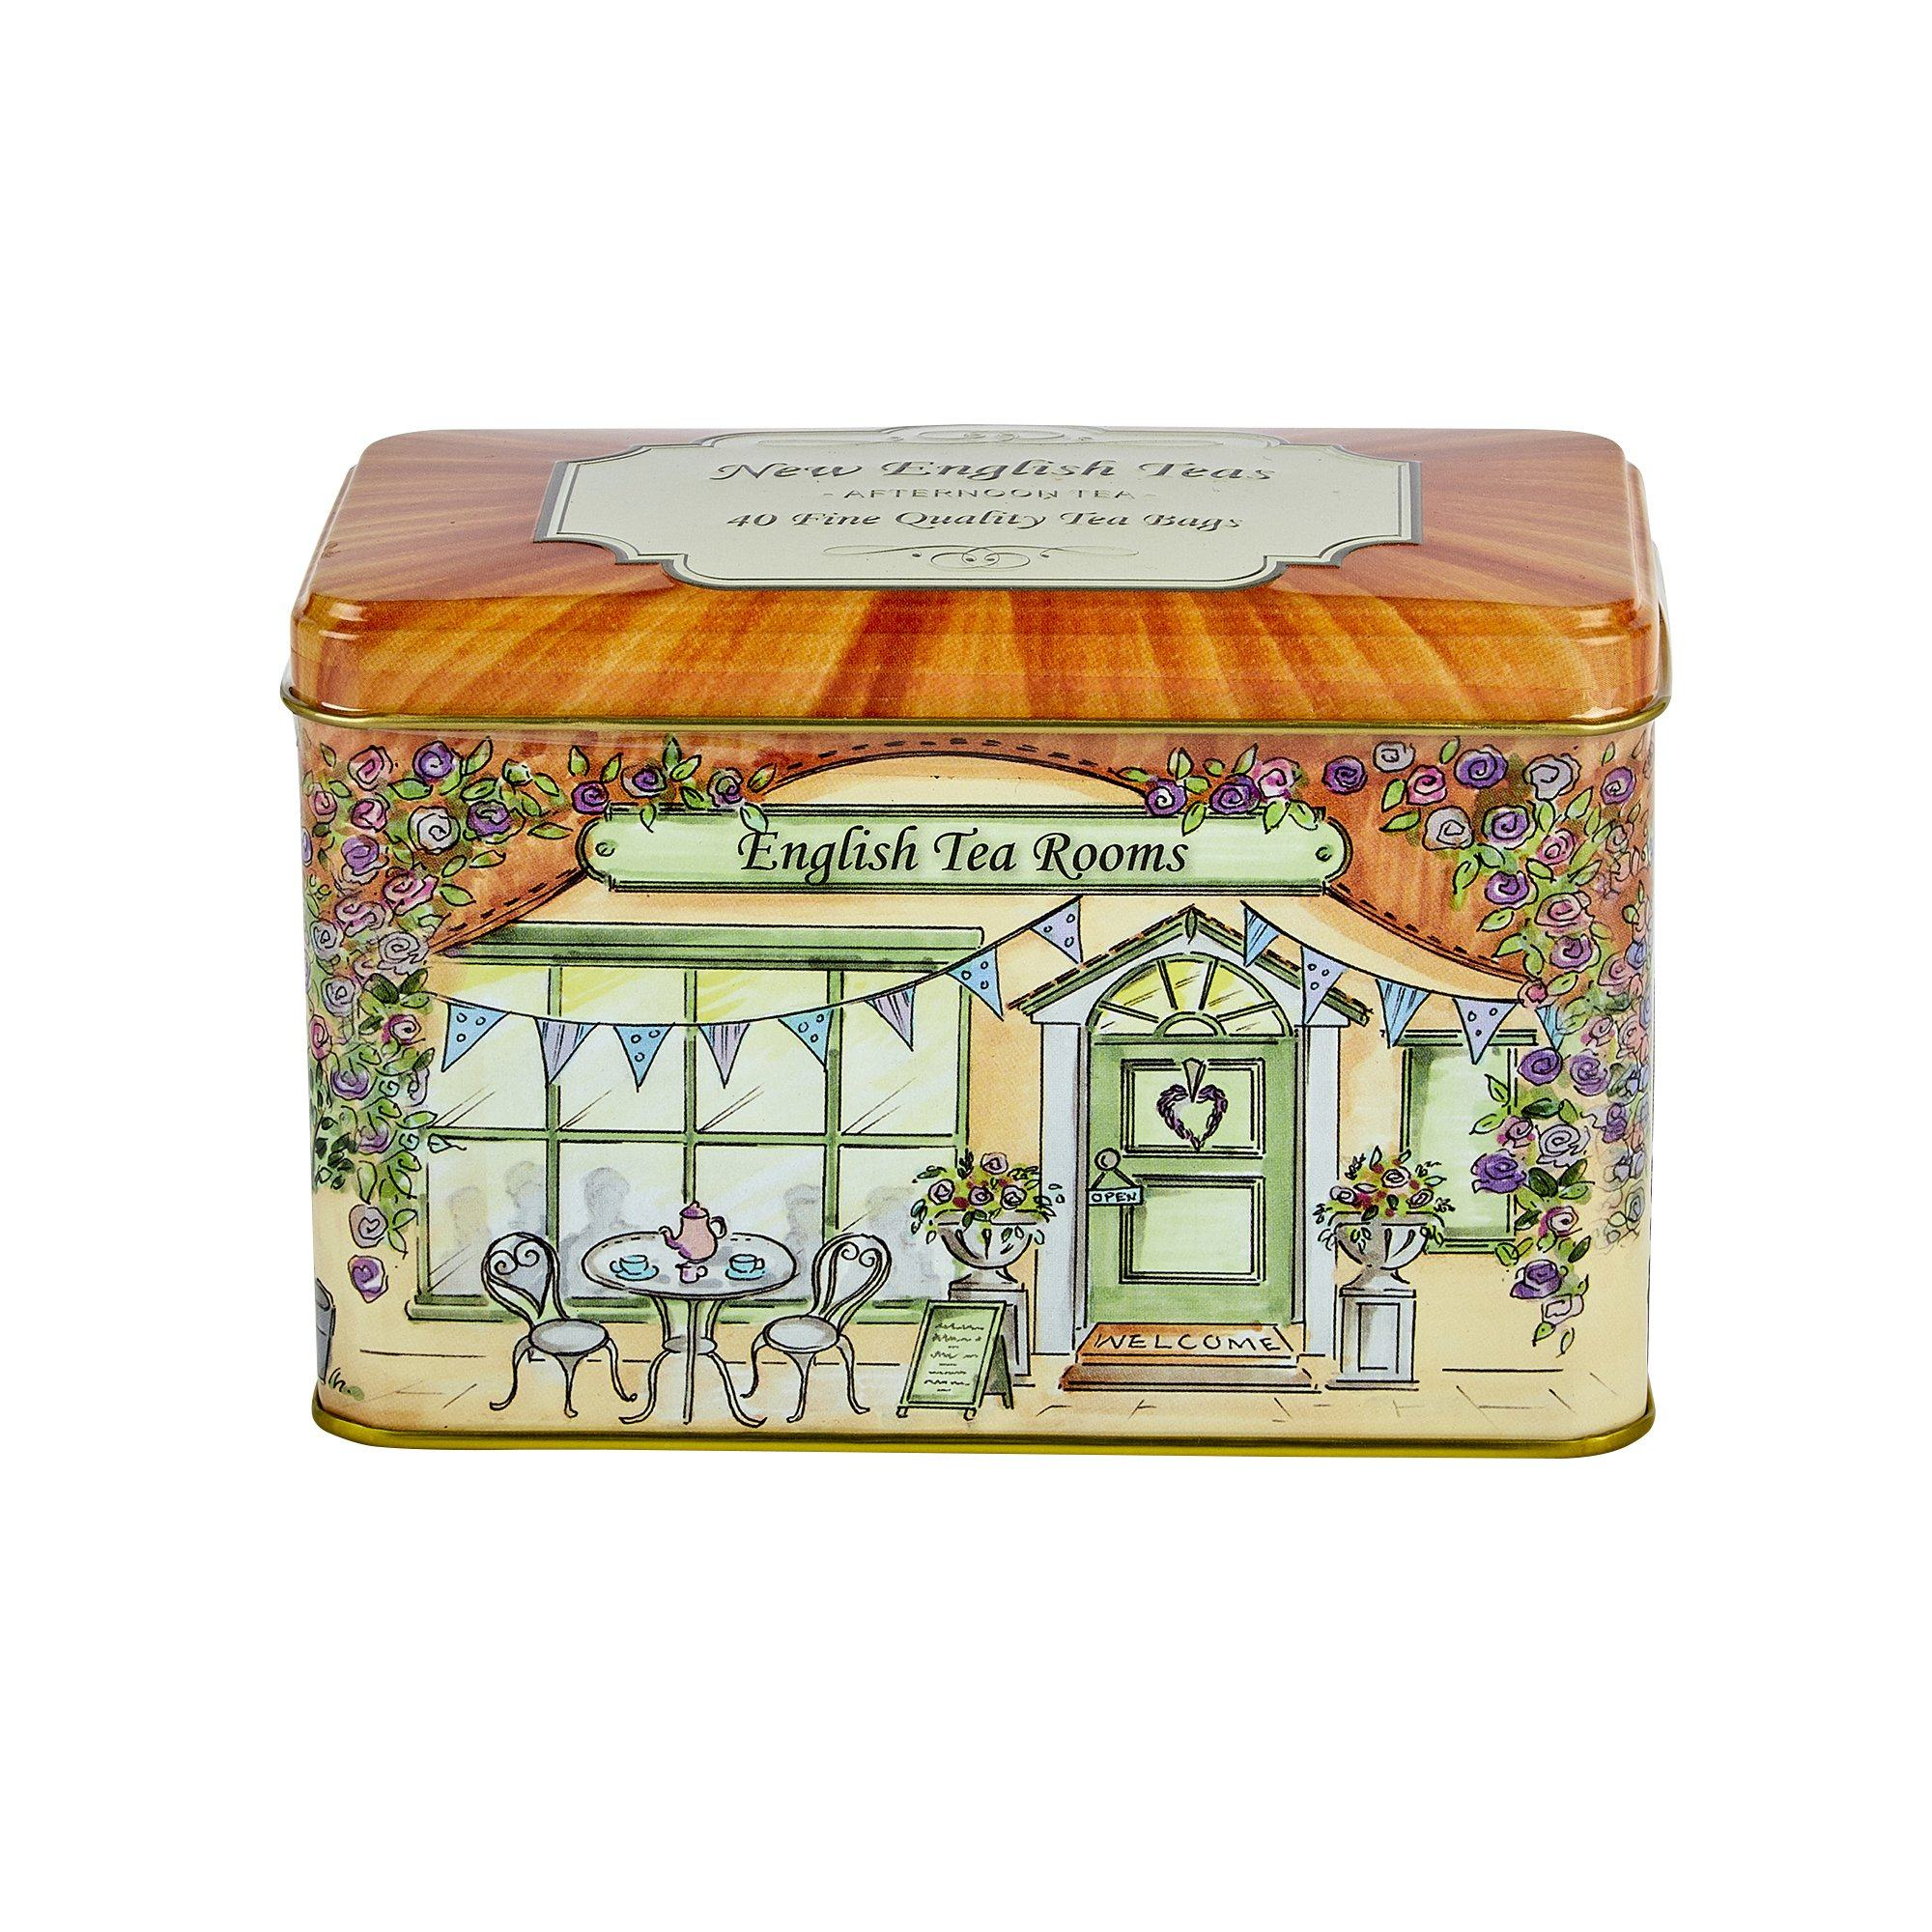 Vintage English Tea Rooms Afternoon Tea Tin 40 Teabags Black Tea New English Teas